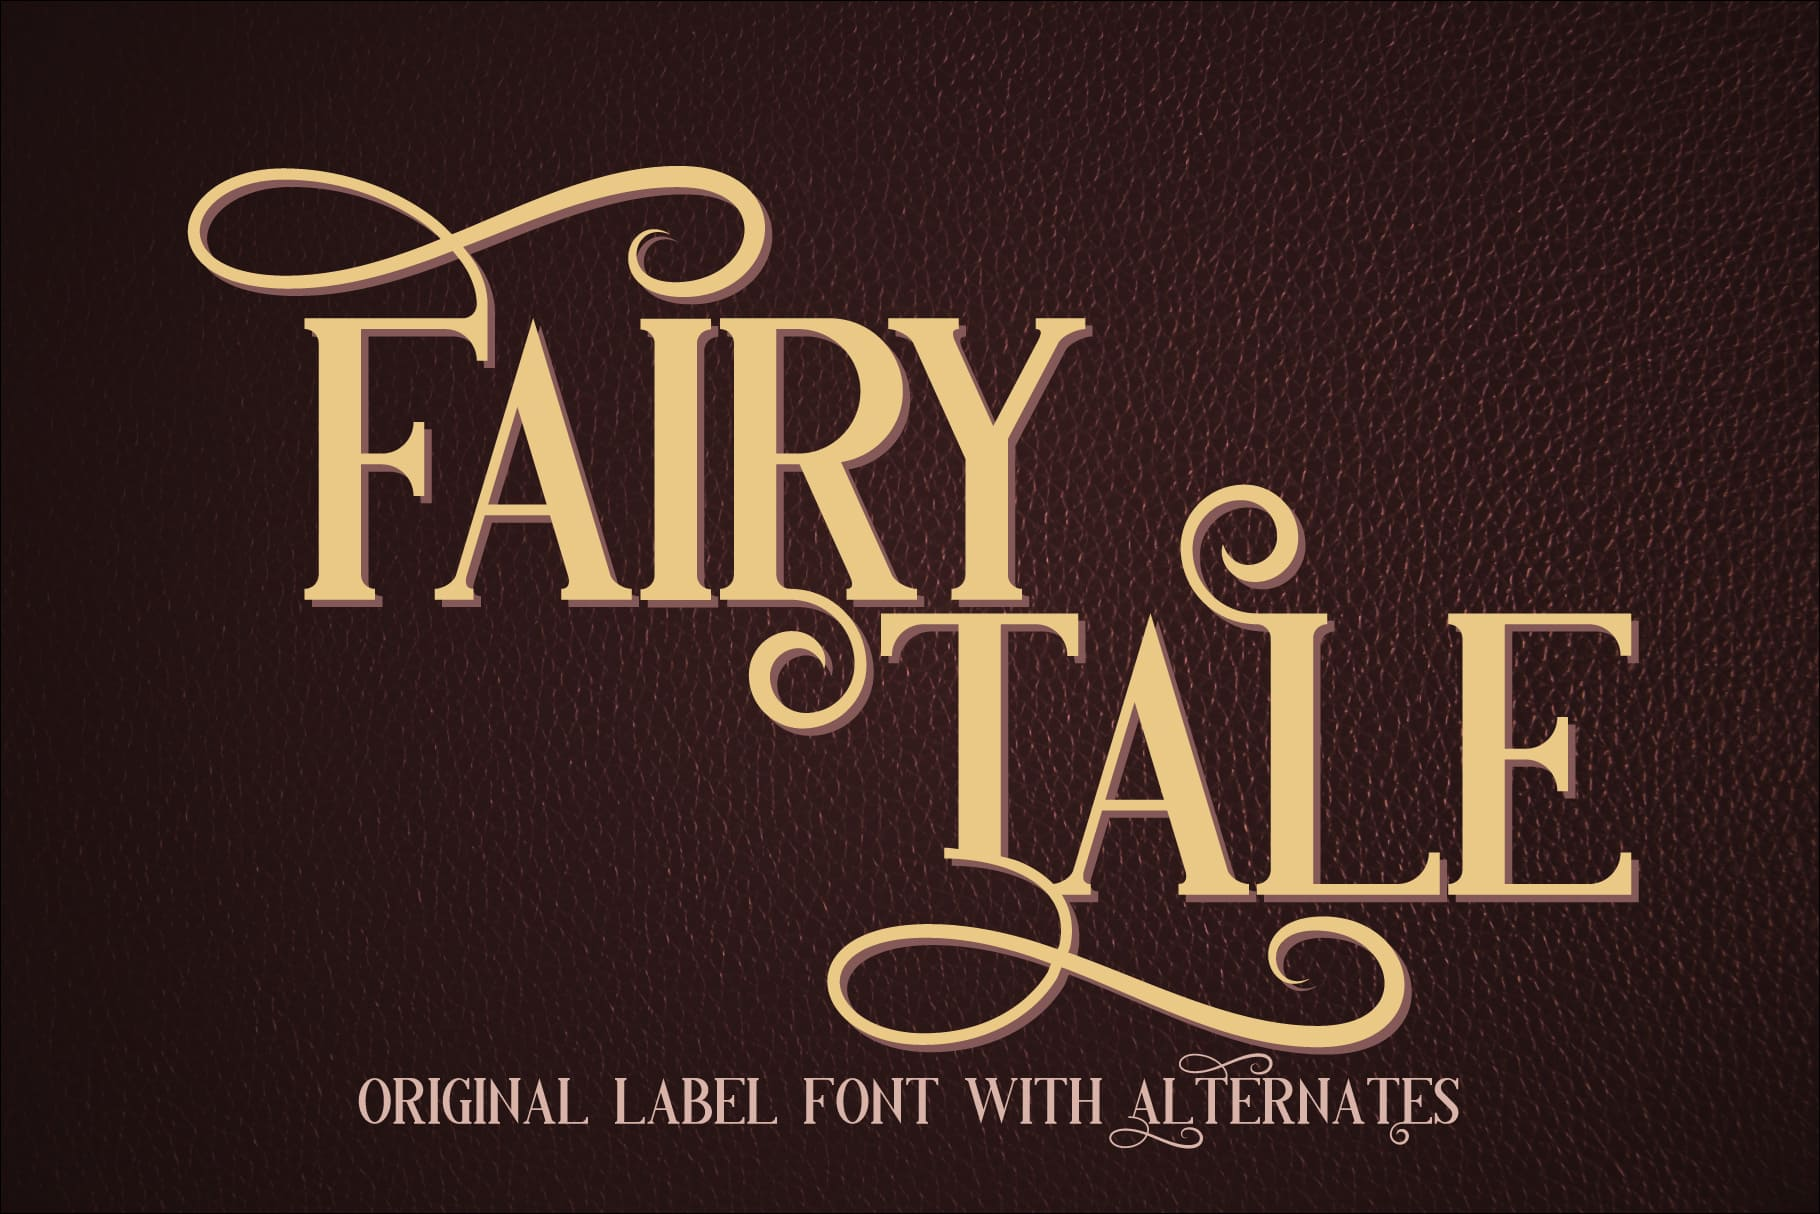 Font for Fairy Tale.